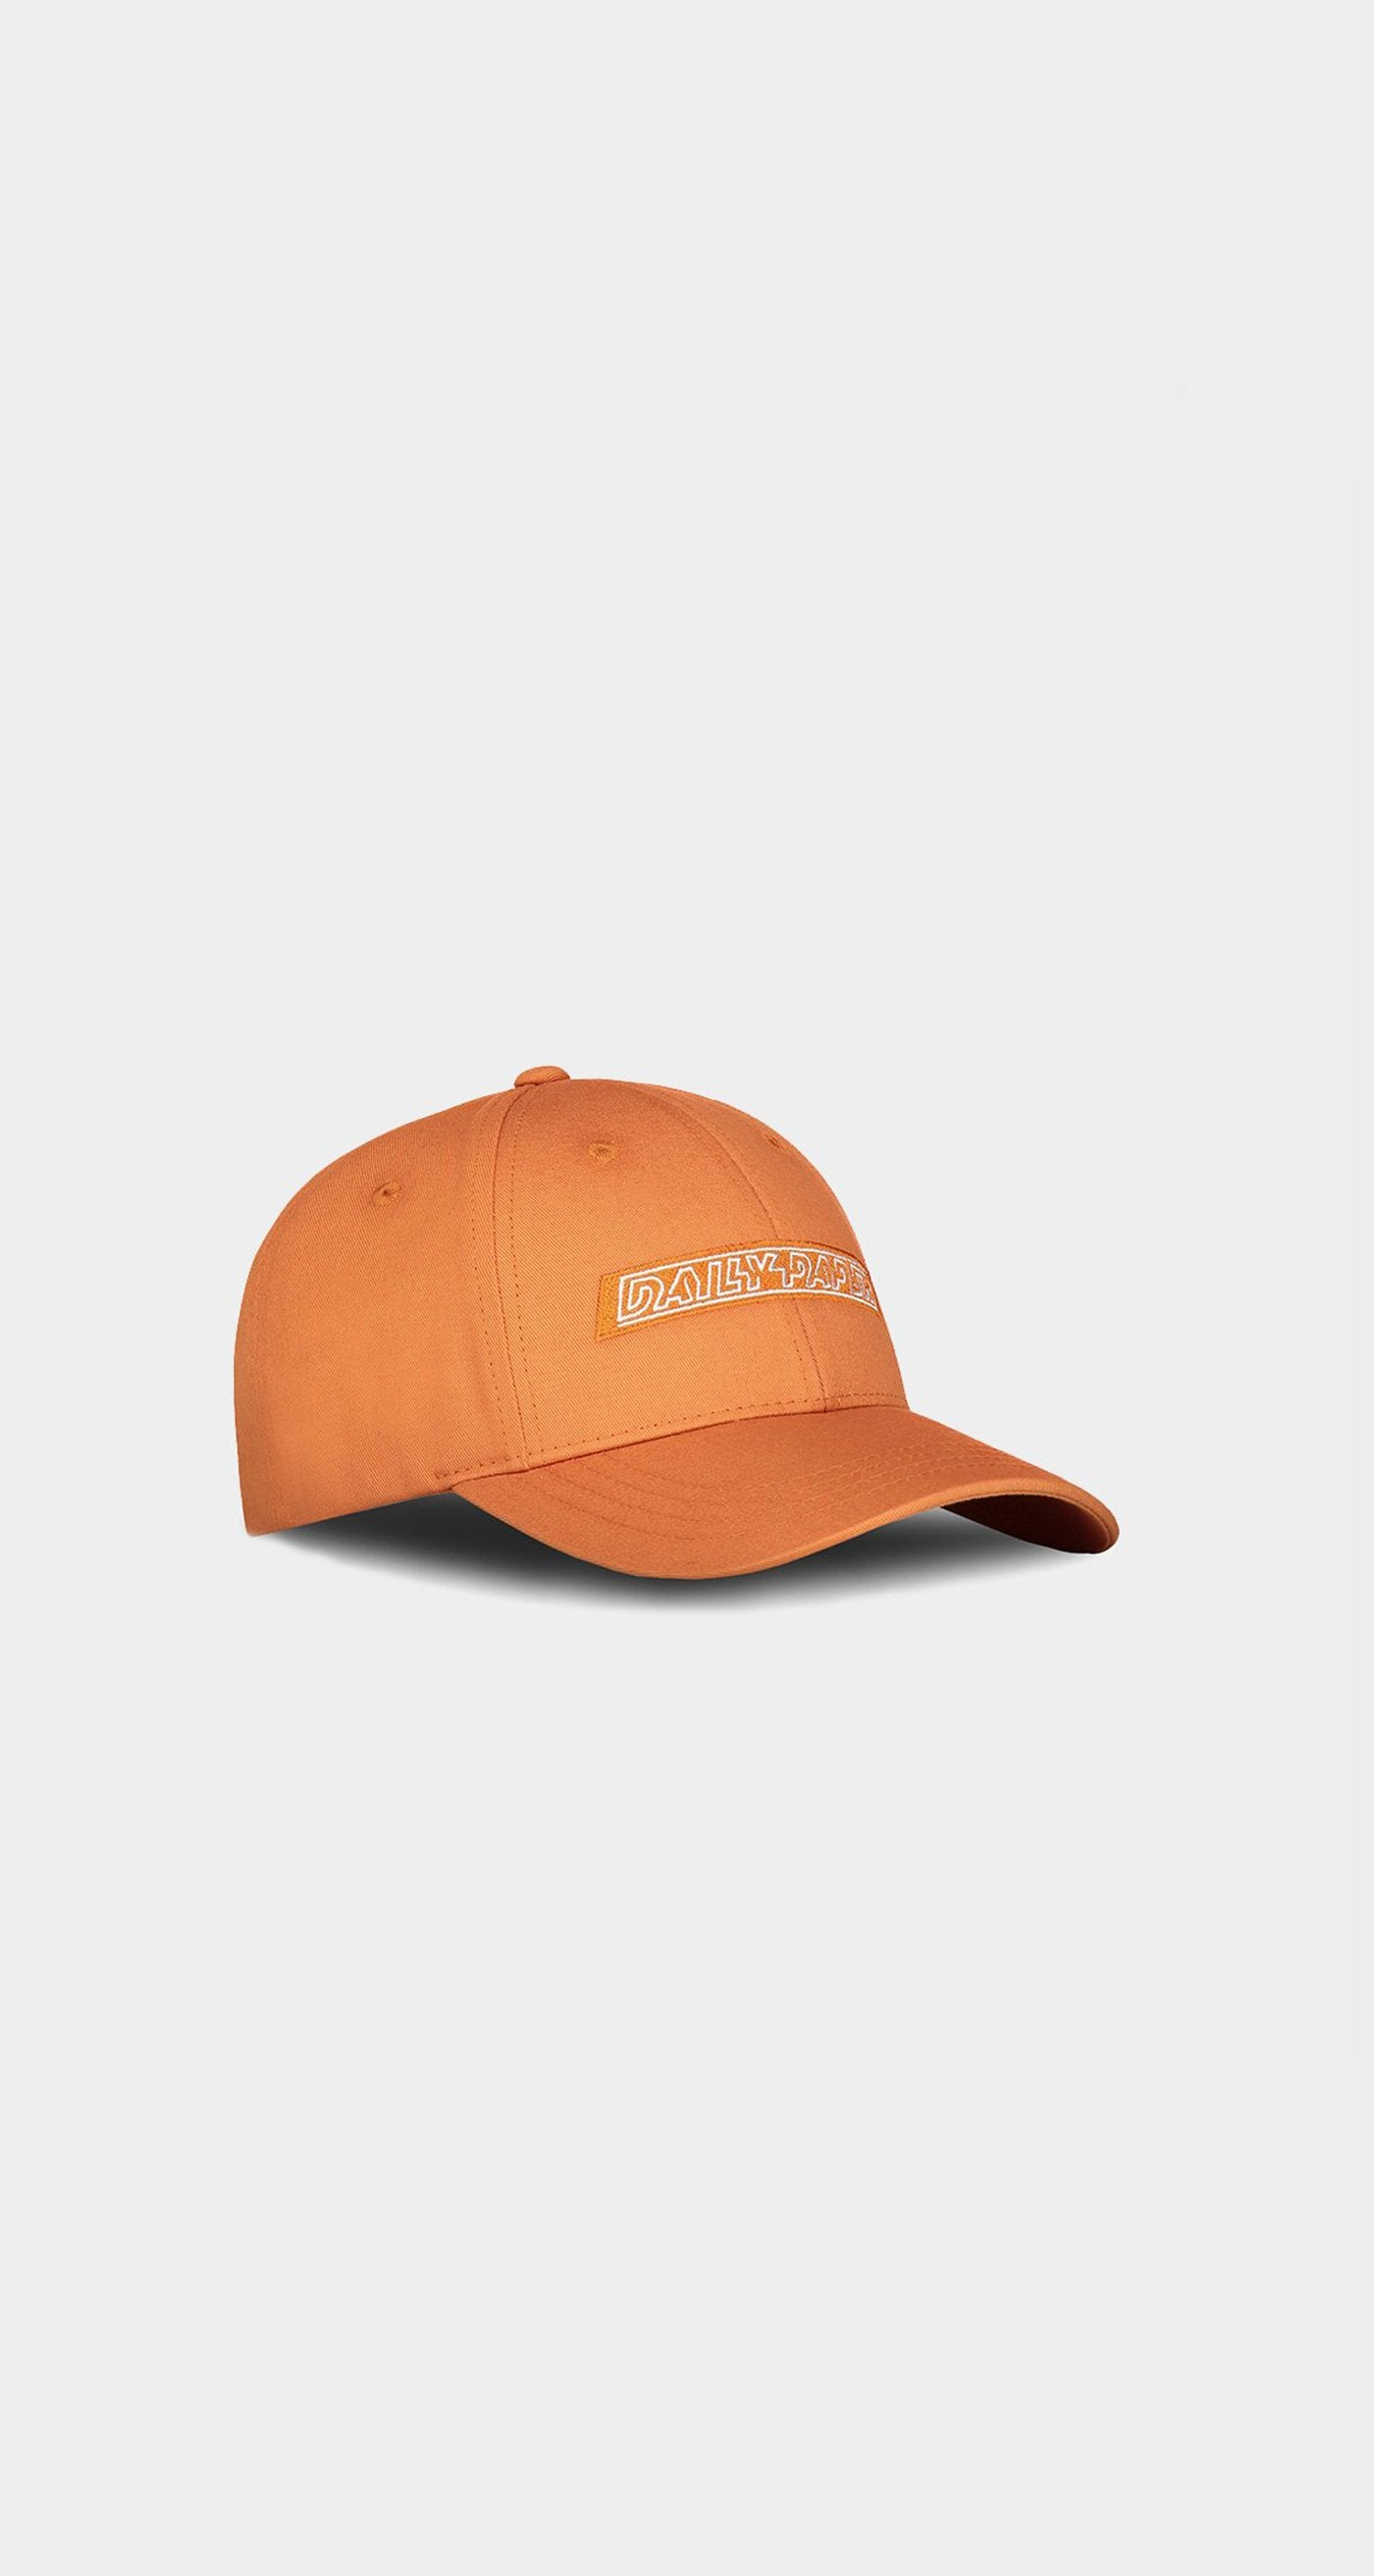 Daily Paper - Orange Copatch Cap